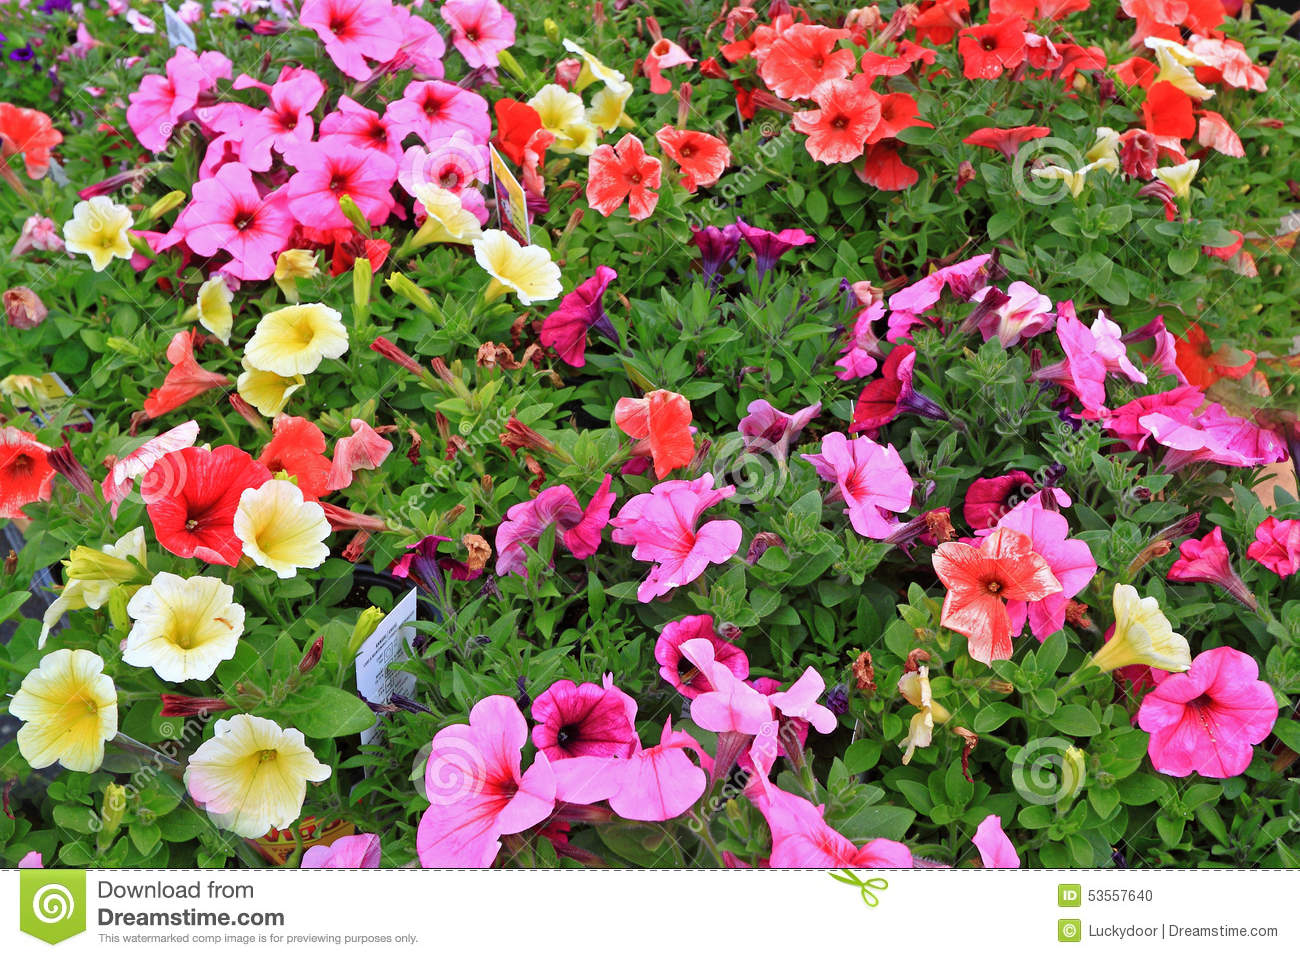 Colorful annuals flowers stock photo image of yellow 53557640 colorful annuals flowers izmirmasajfo